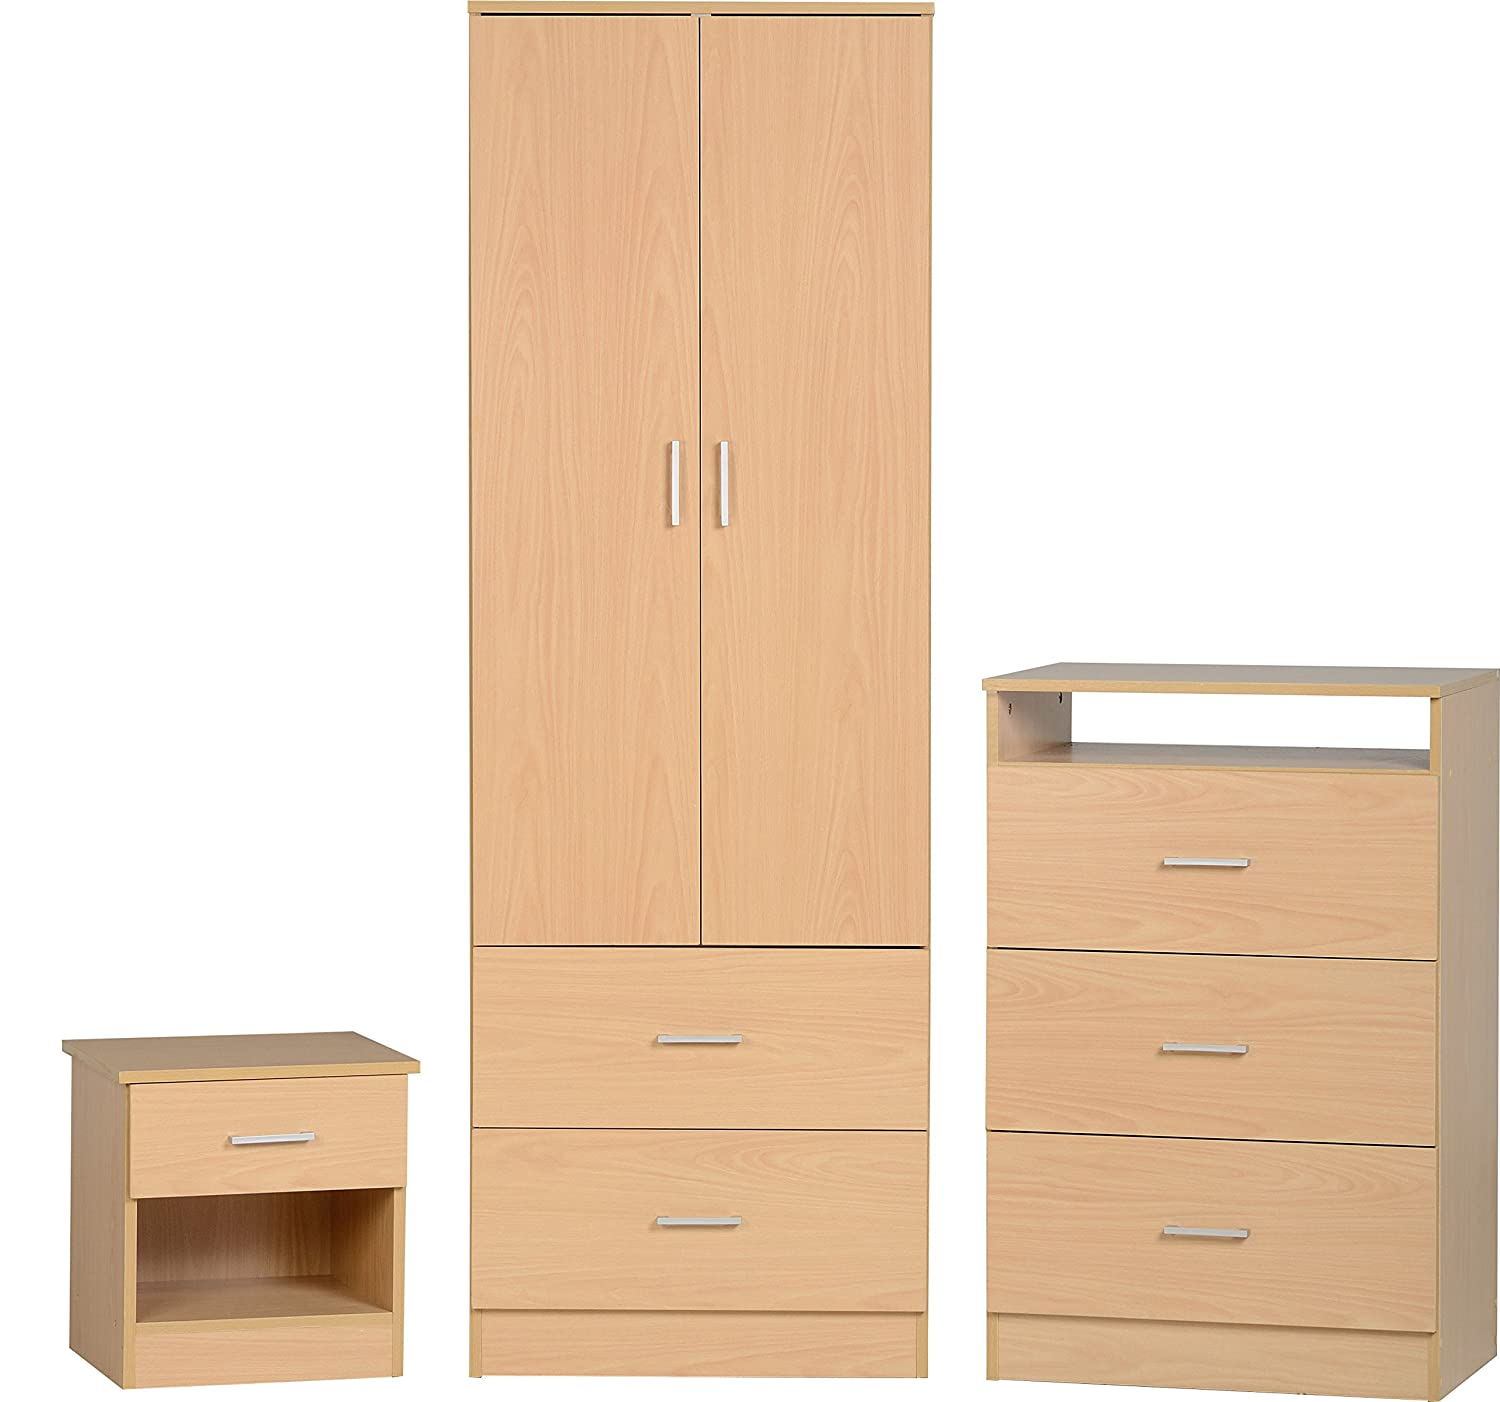 Seconique Polar Bedroom Set, Wood, Beech Effect, 359.95x439.95x99.95 cm 100-108-003